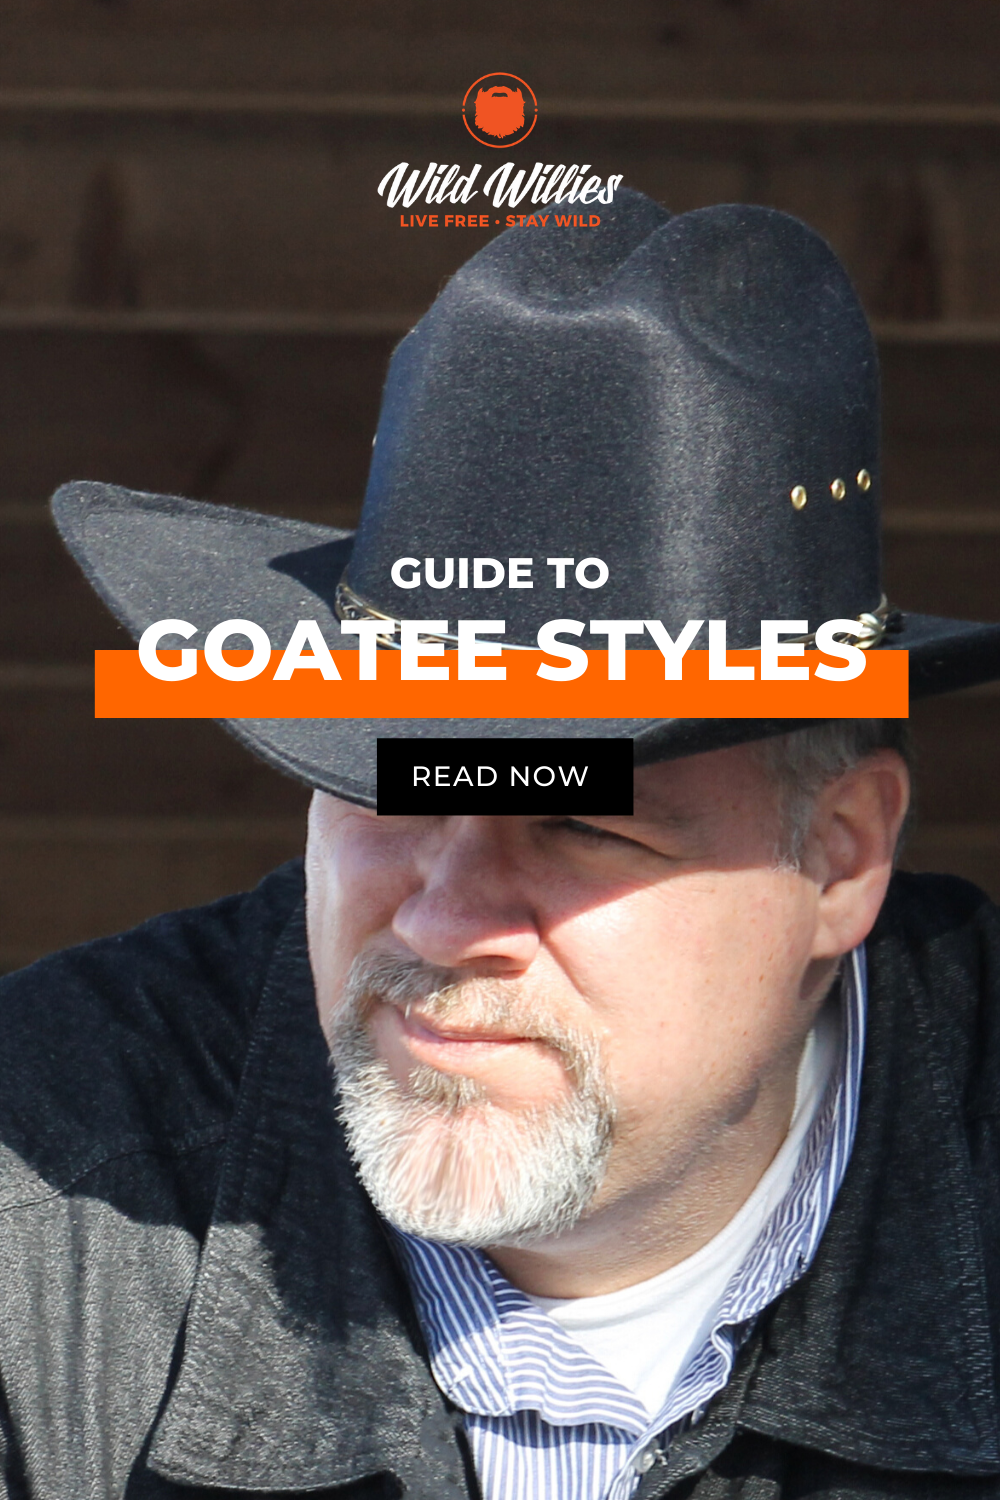 The Guide to Goatee Styles for Men